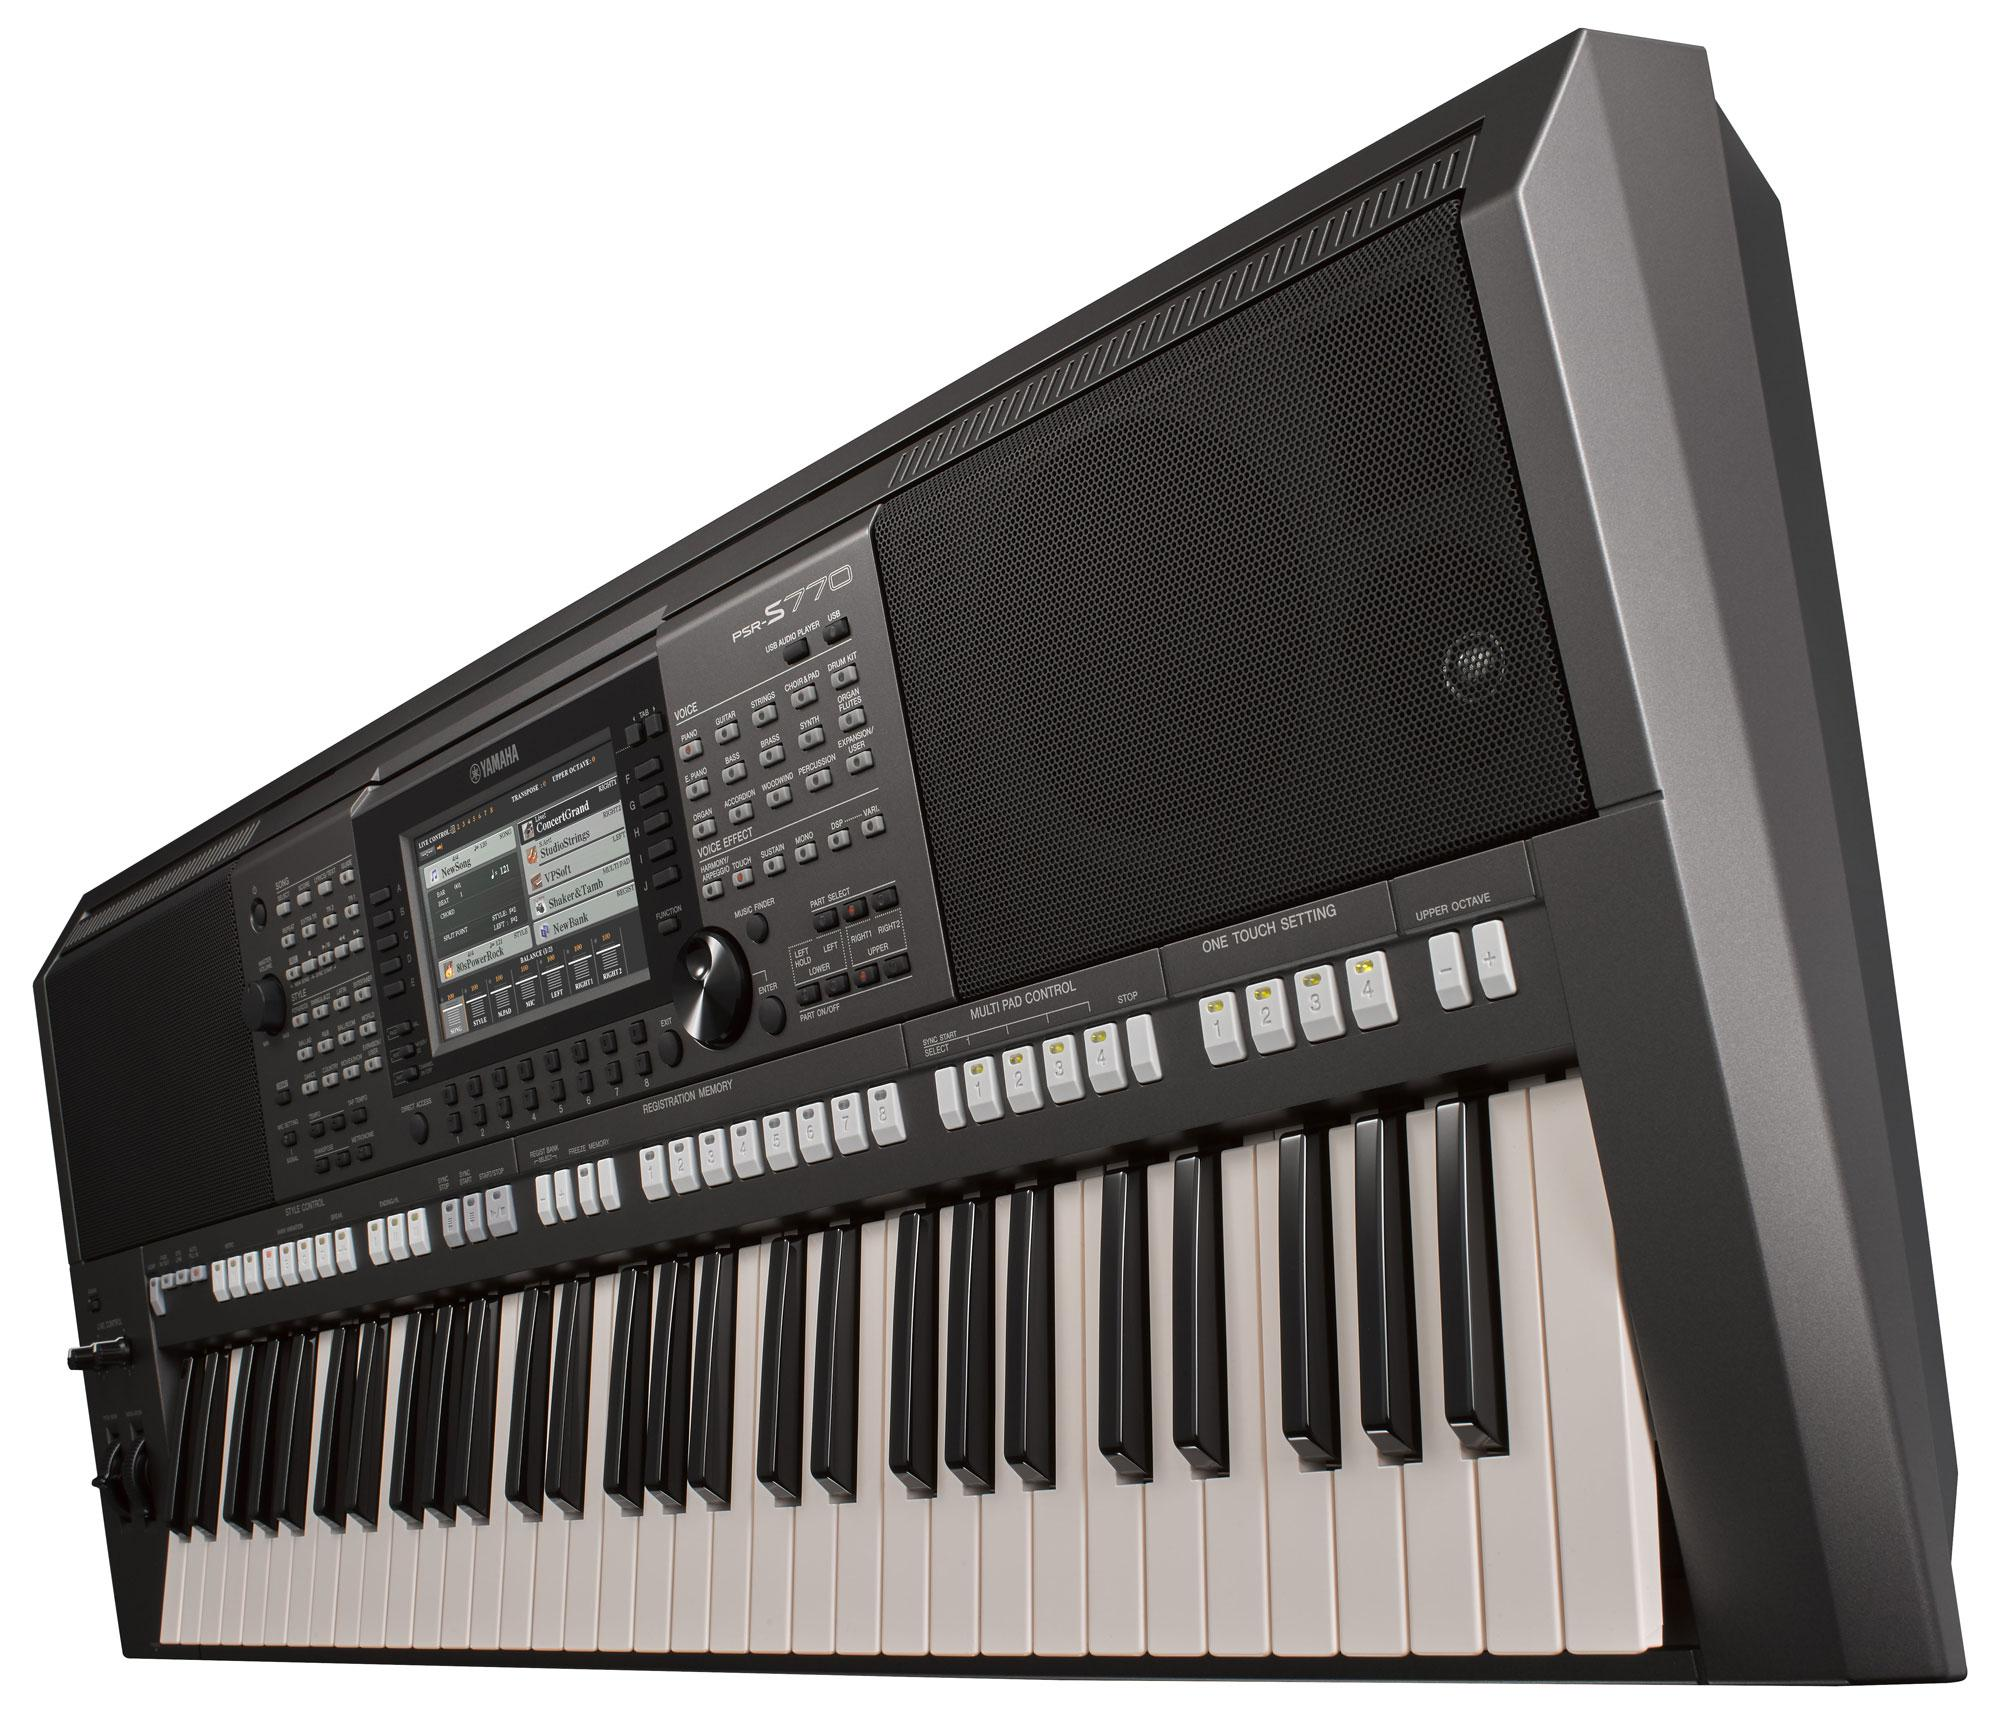 yamaha psr s770 keyboard. Black Bedroom Furniture Sets. Home Design Ideas